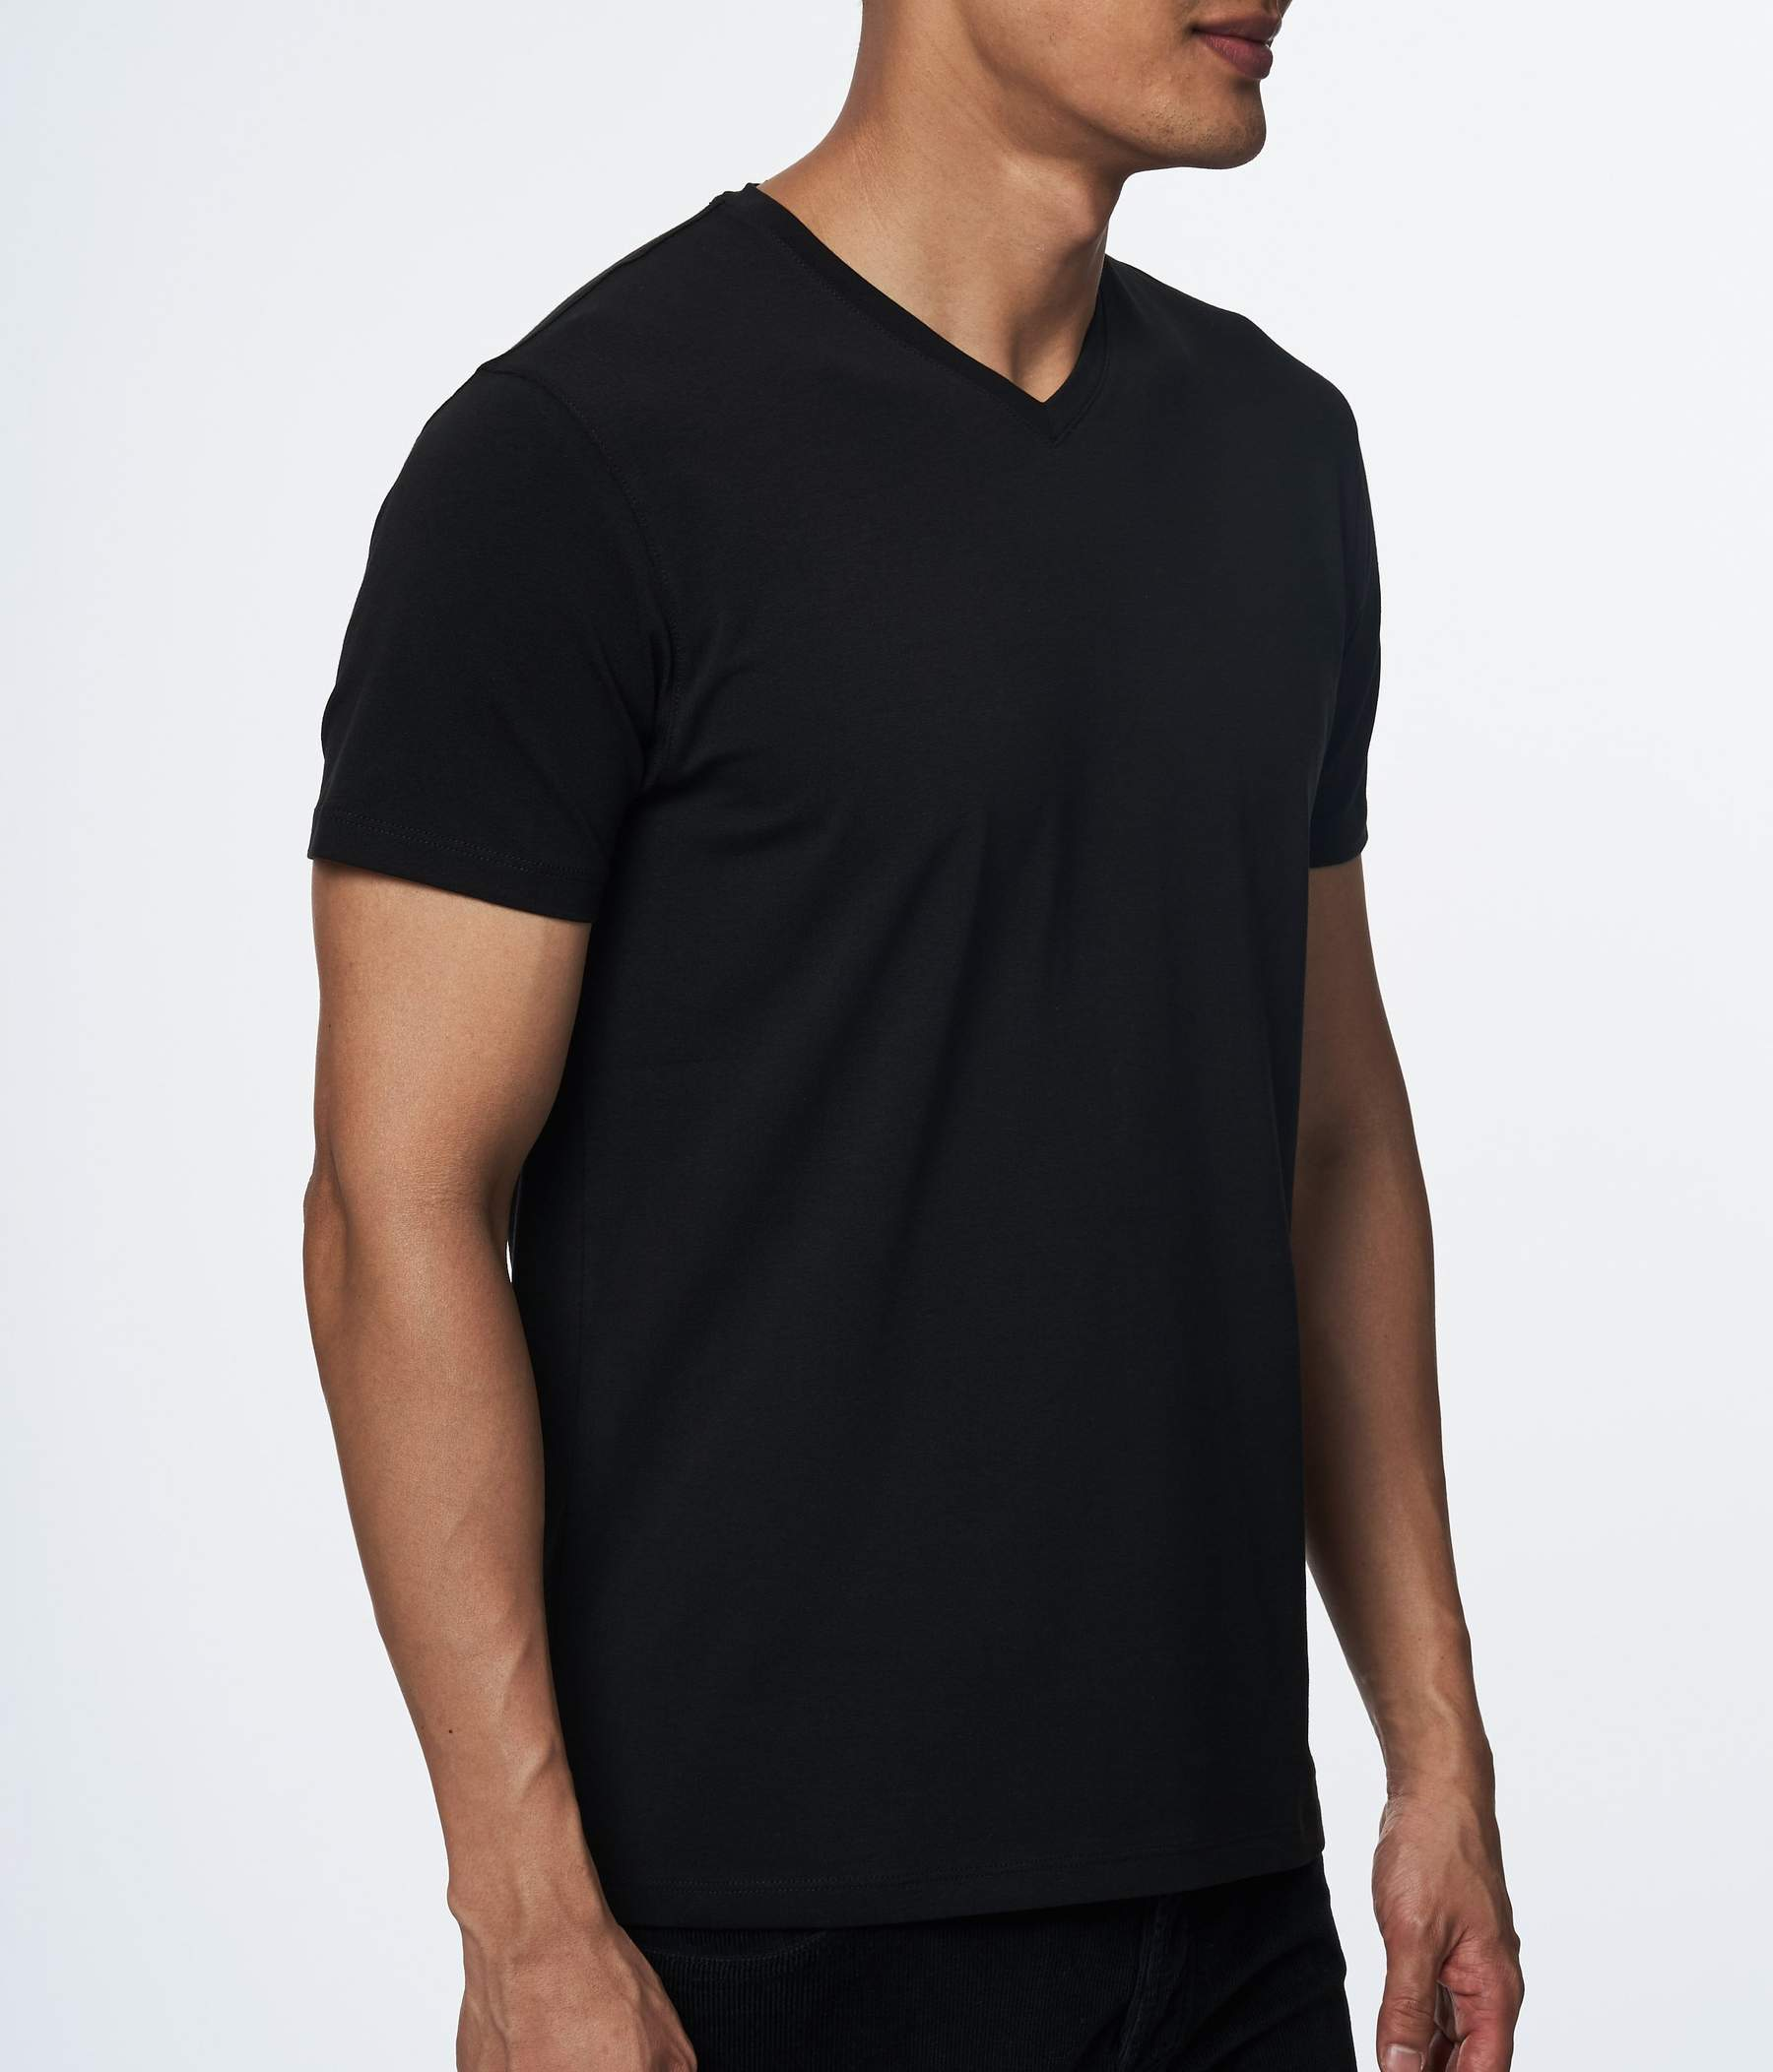 PIMA COTTON STRETCH V NECK black